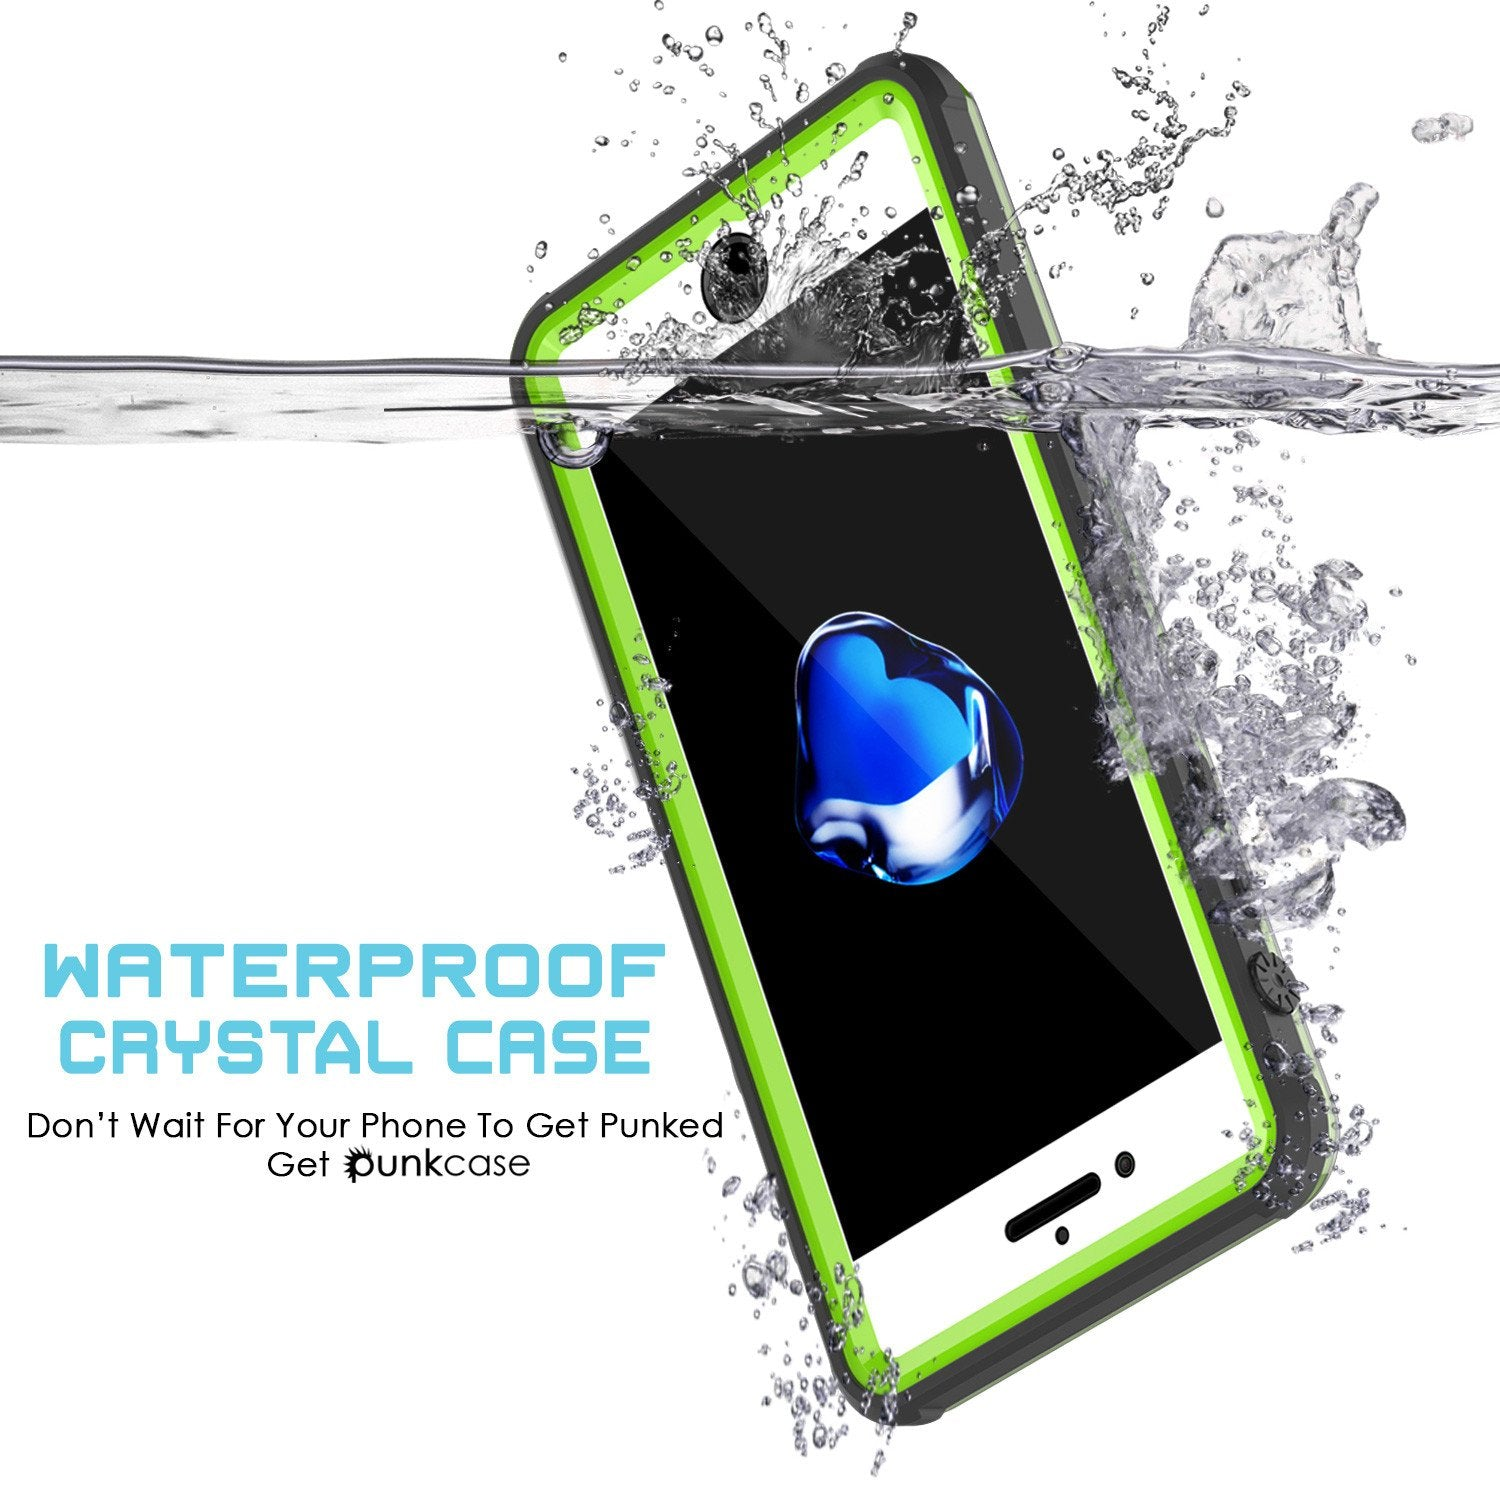 promo code 4540c 19c1d Apple iPhone 8 Waterproof Case, PUNKcase CRYSTAL Light Green W/ Attached  Screen Protector | Warranty